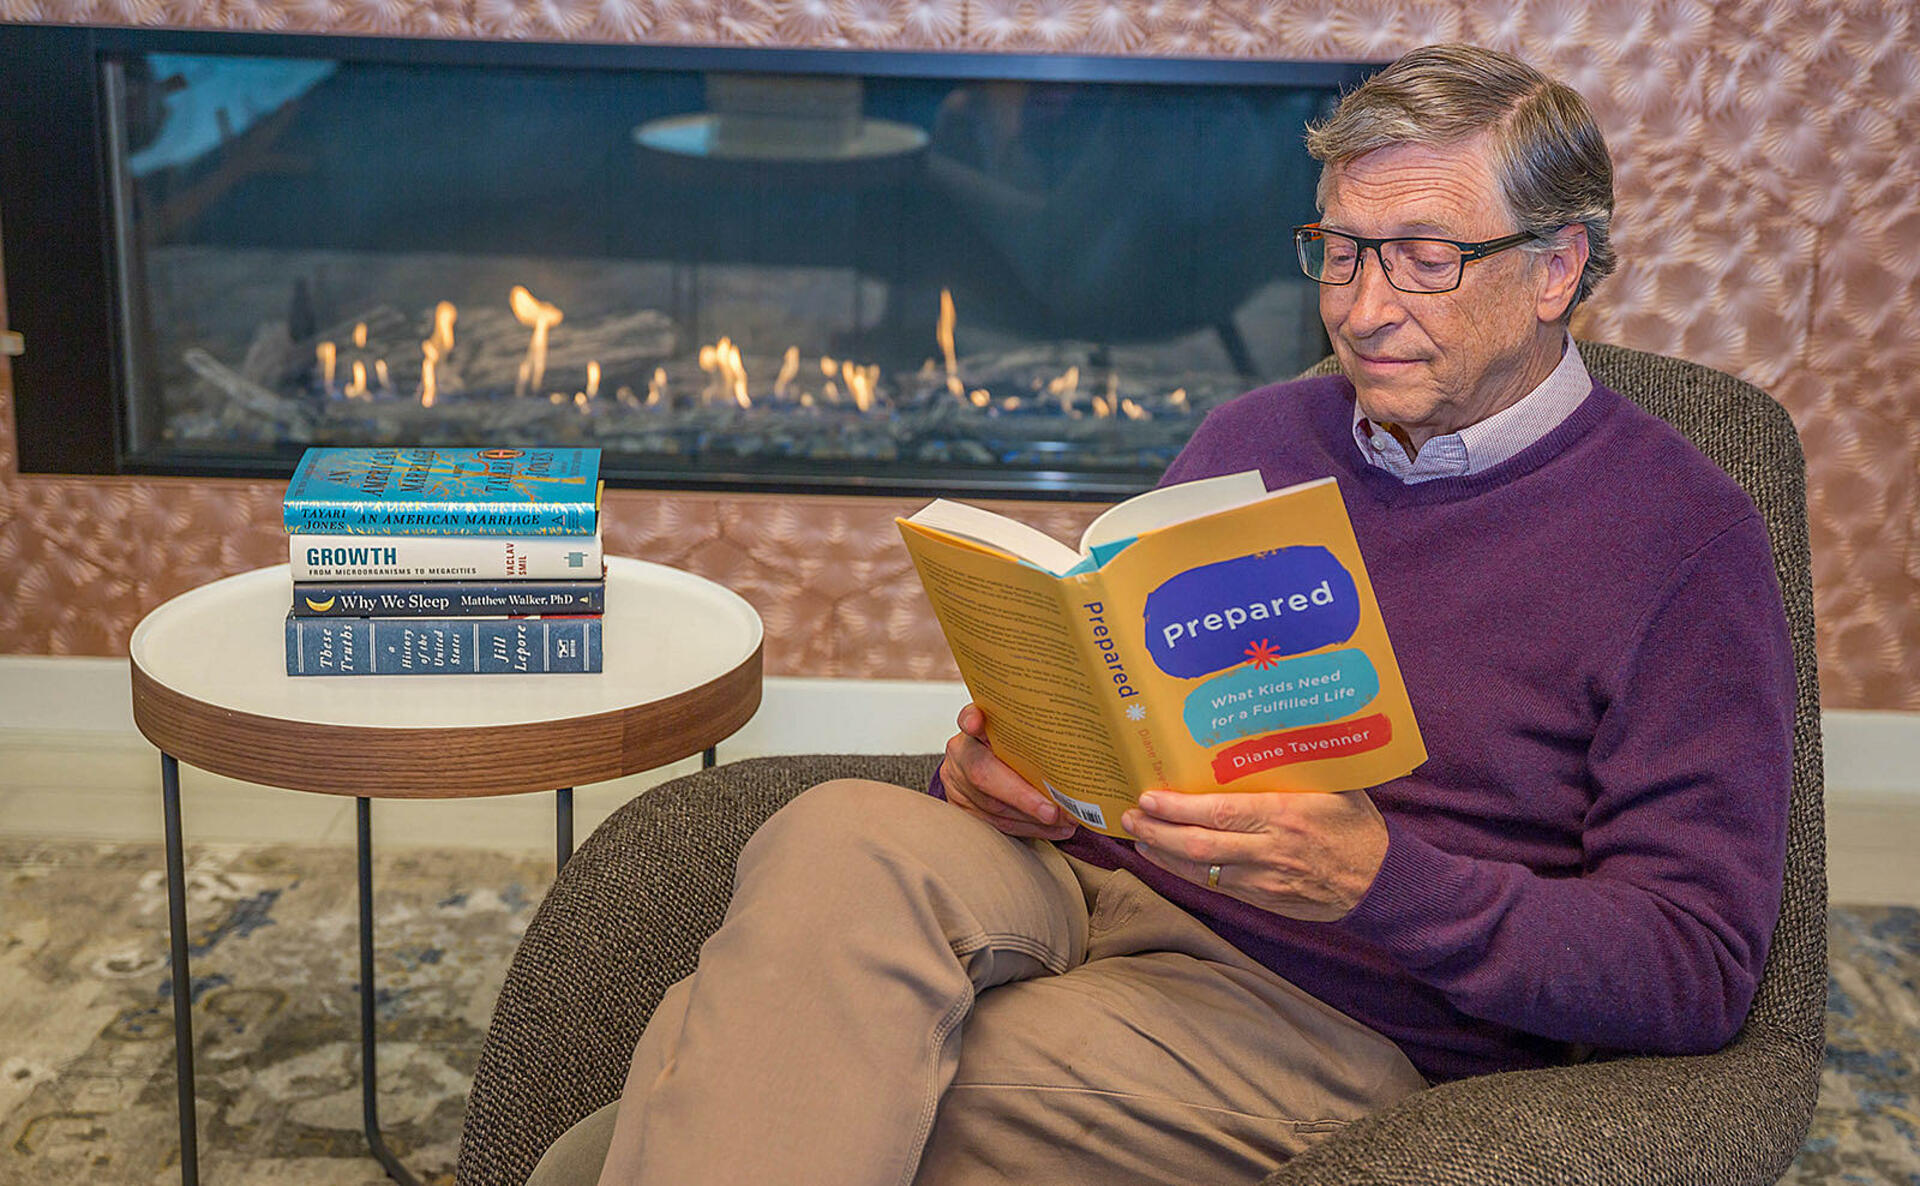 Bill Gates: Most Recommended Books